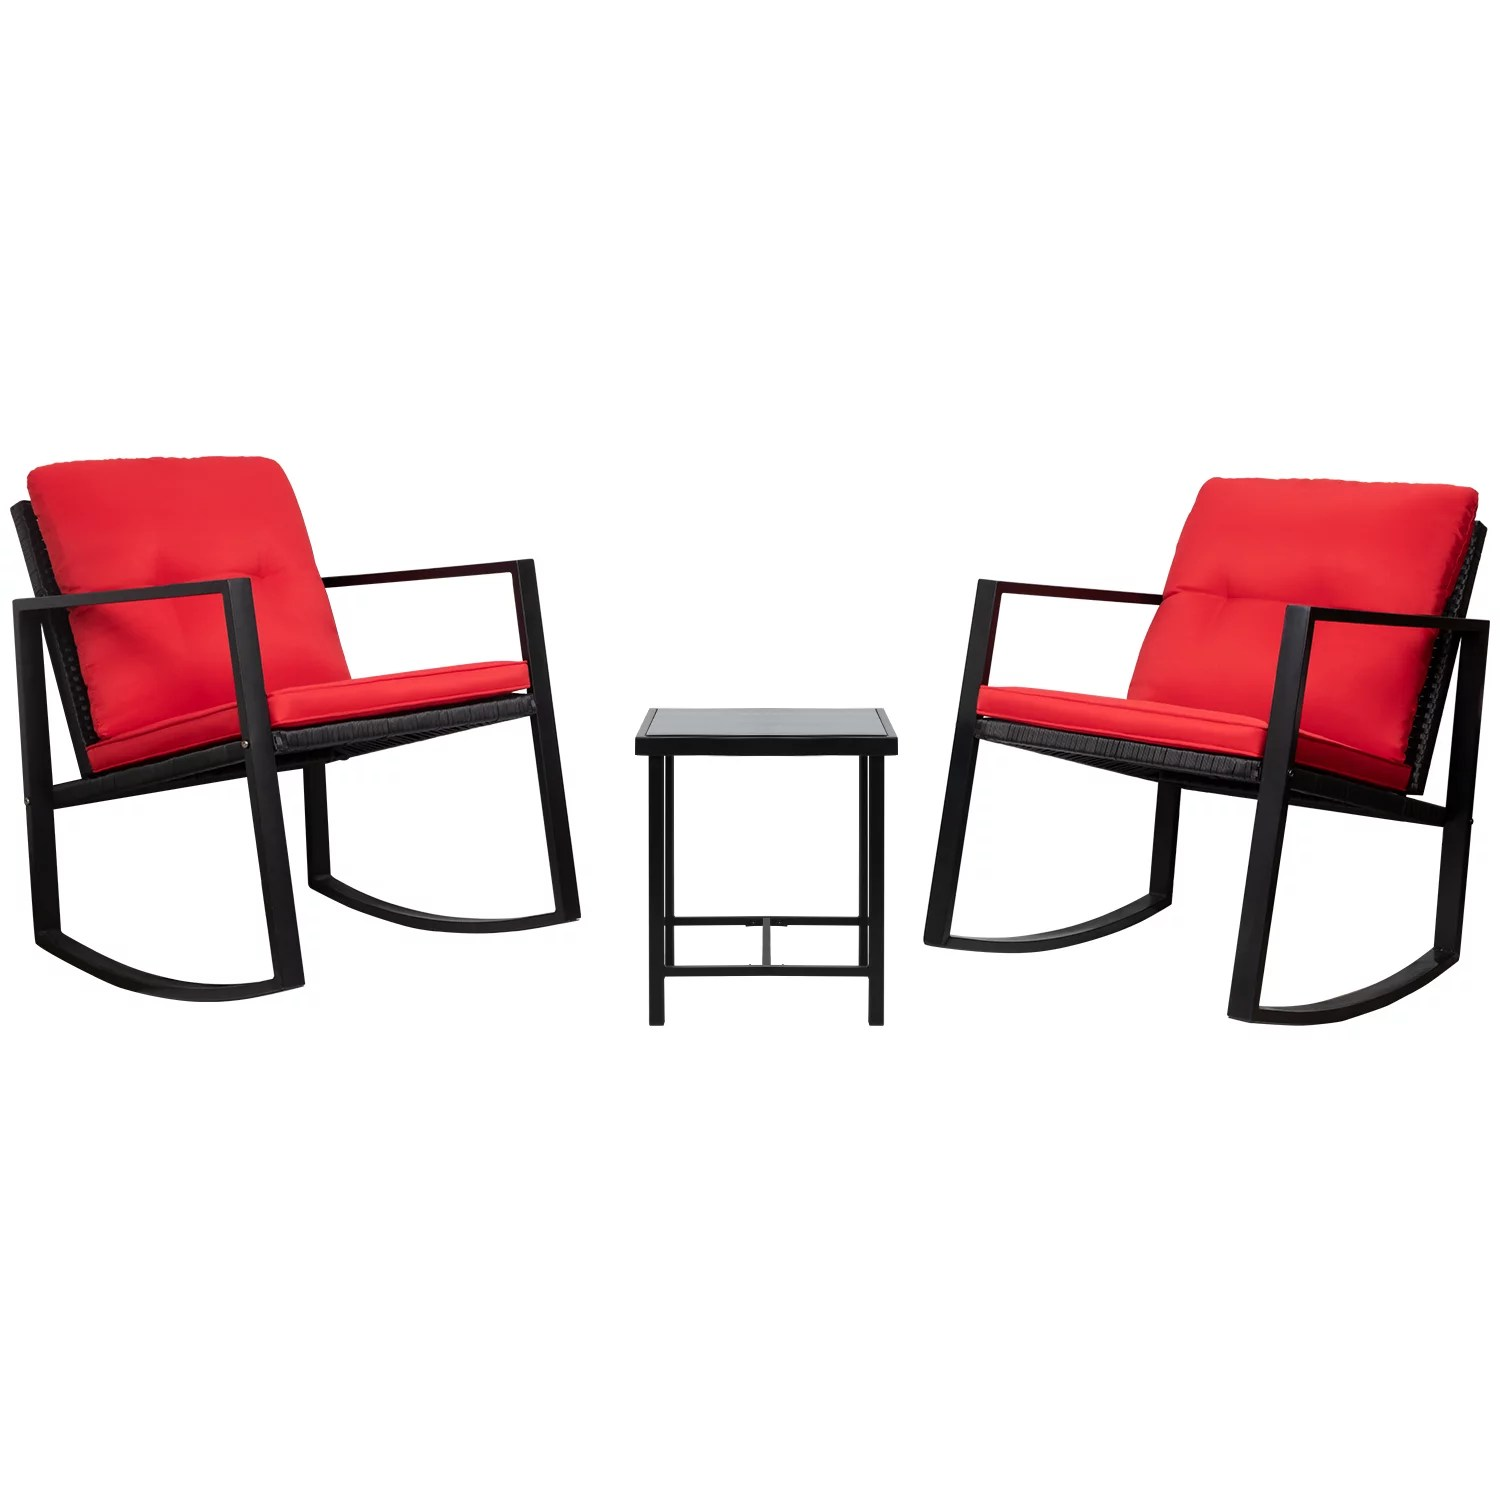 walnew 3 pieces patio furniture set rocking wicker bistro sets modern outdoor rocking chair furniture sets cushioned pe rattan chairs conversation